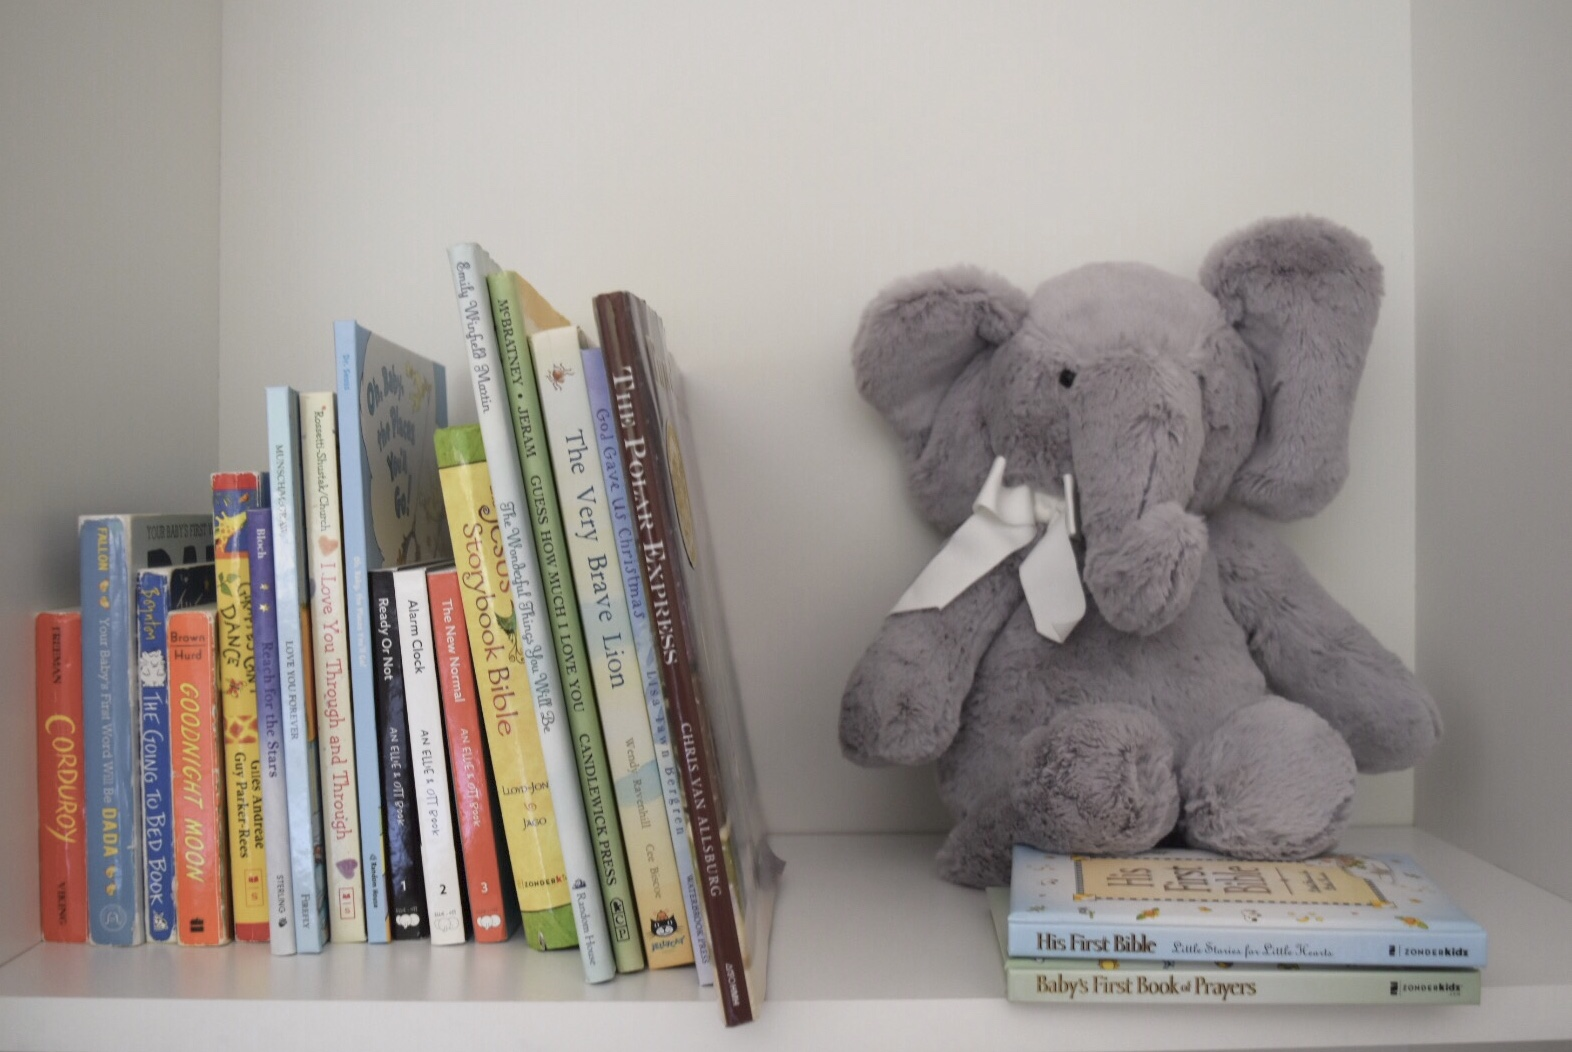 A sneak preview of Max's little newborn library in his remodeled nursery with Emerald Rouge. His little stuffed elephant keeps all Max's favorite books company, including classics like Goodnight Moon, Corduroy, the Polar Express, and more!